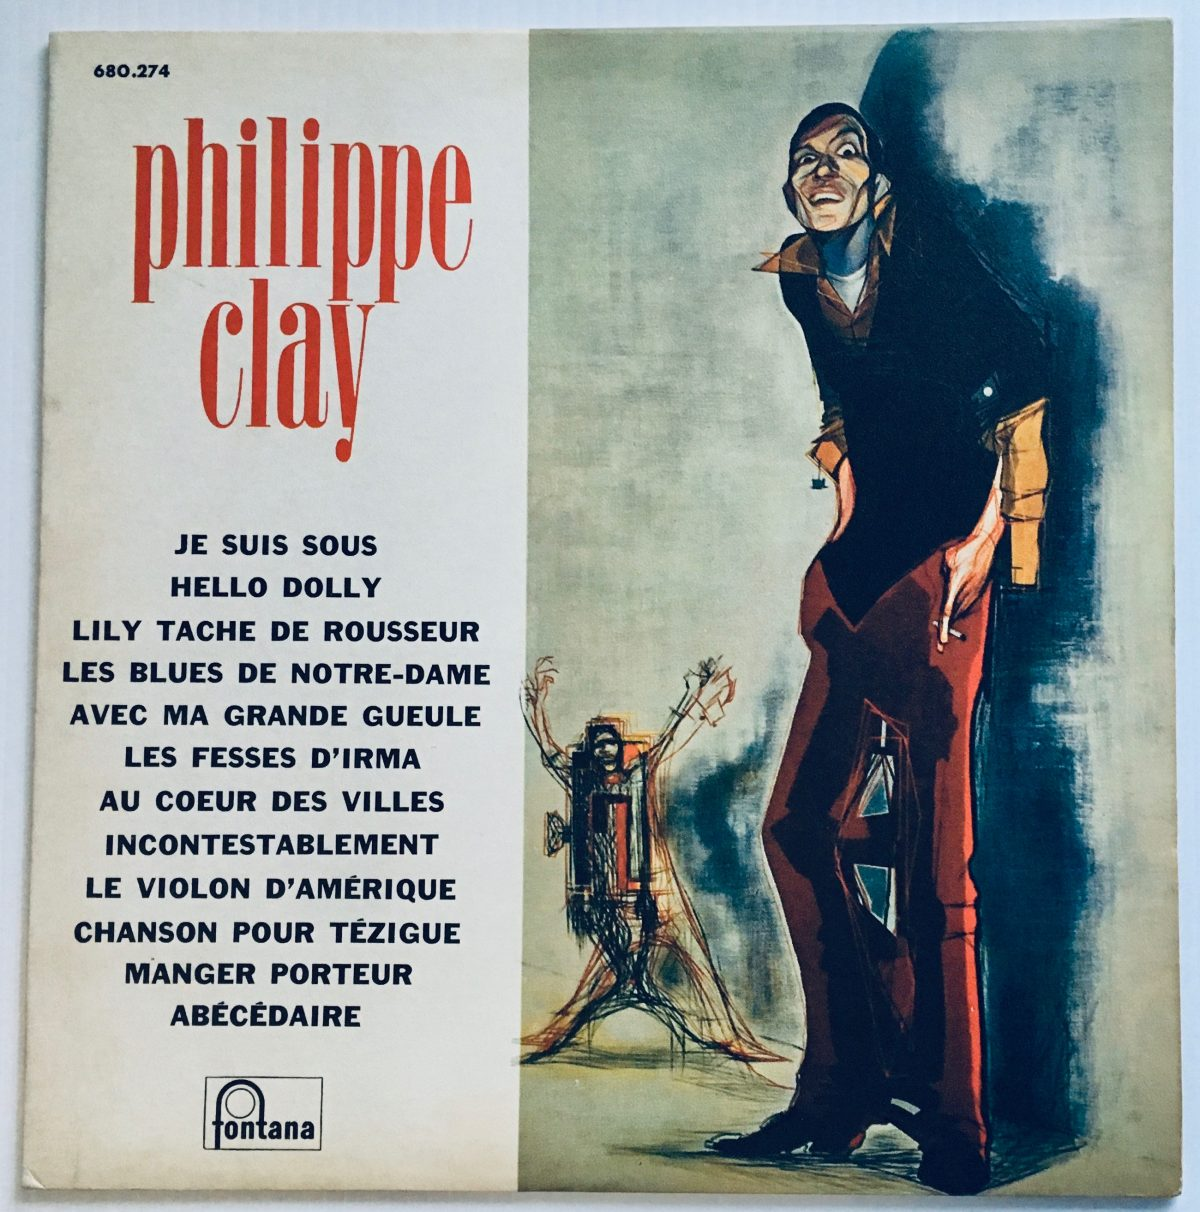 Philippe Clay – Philippe Clay